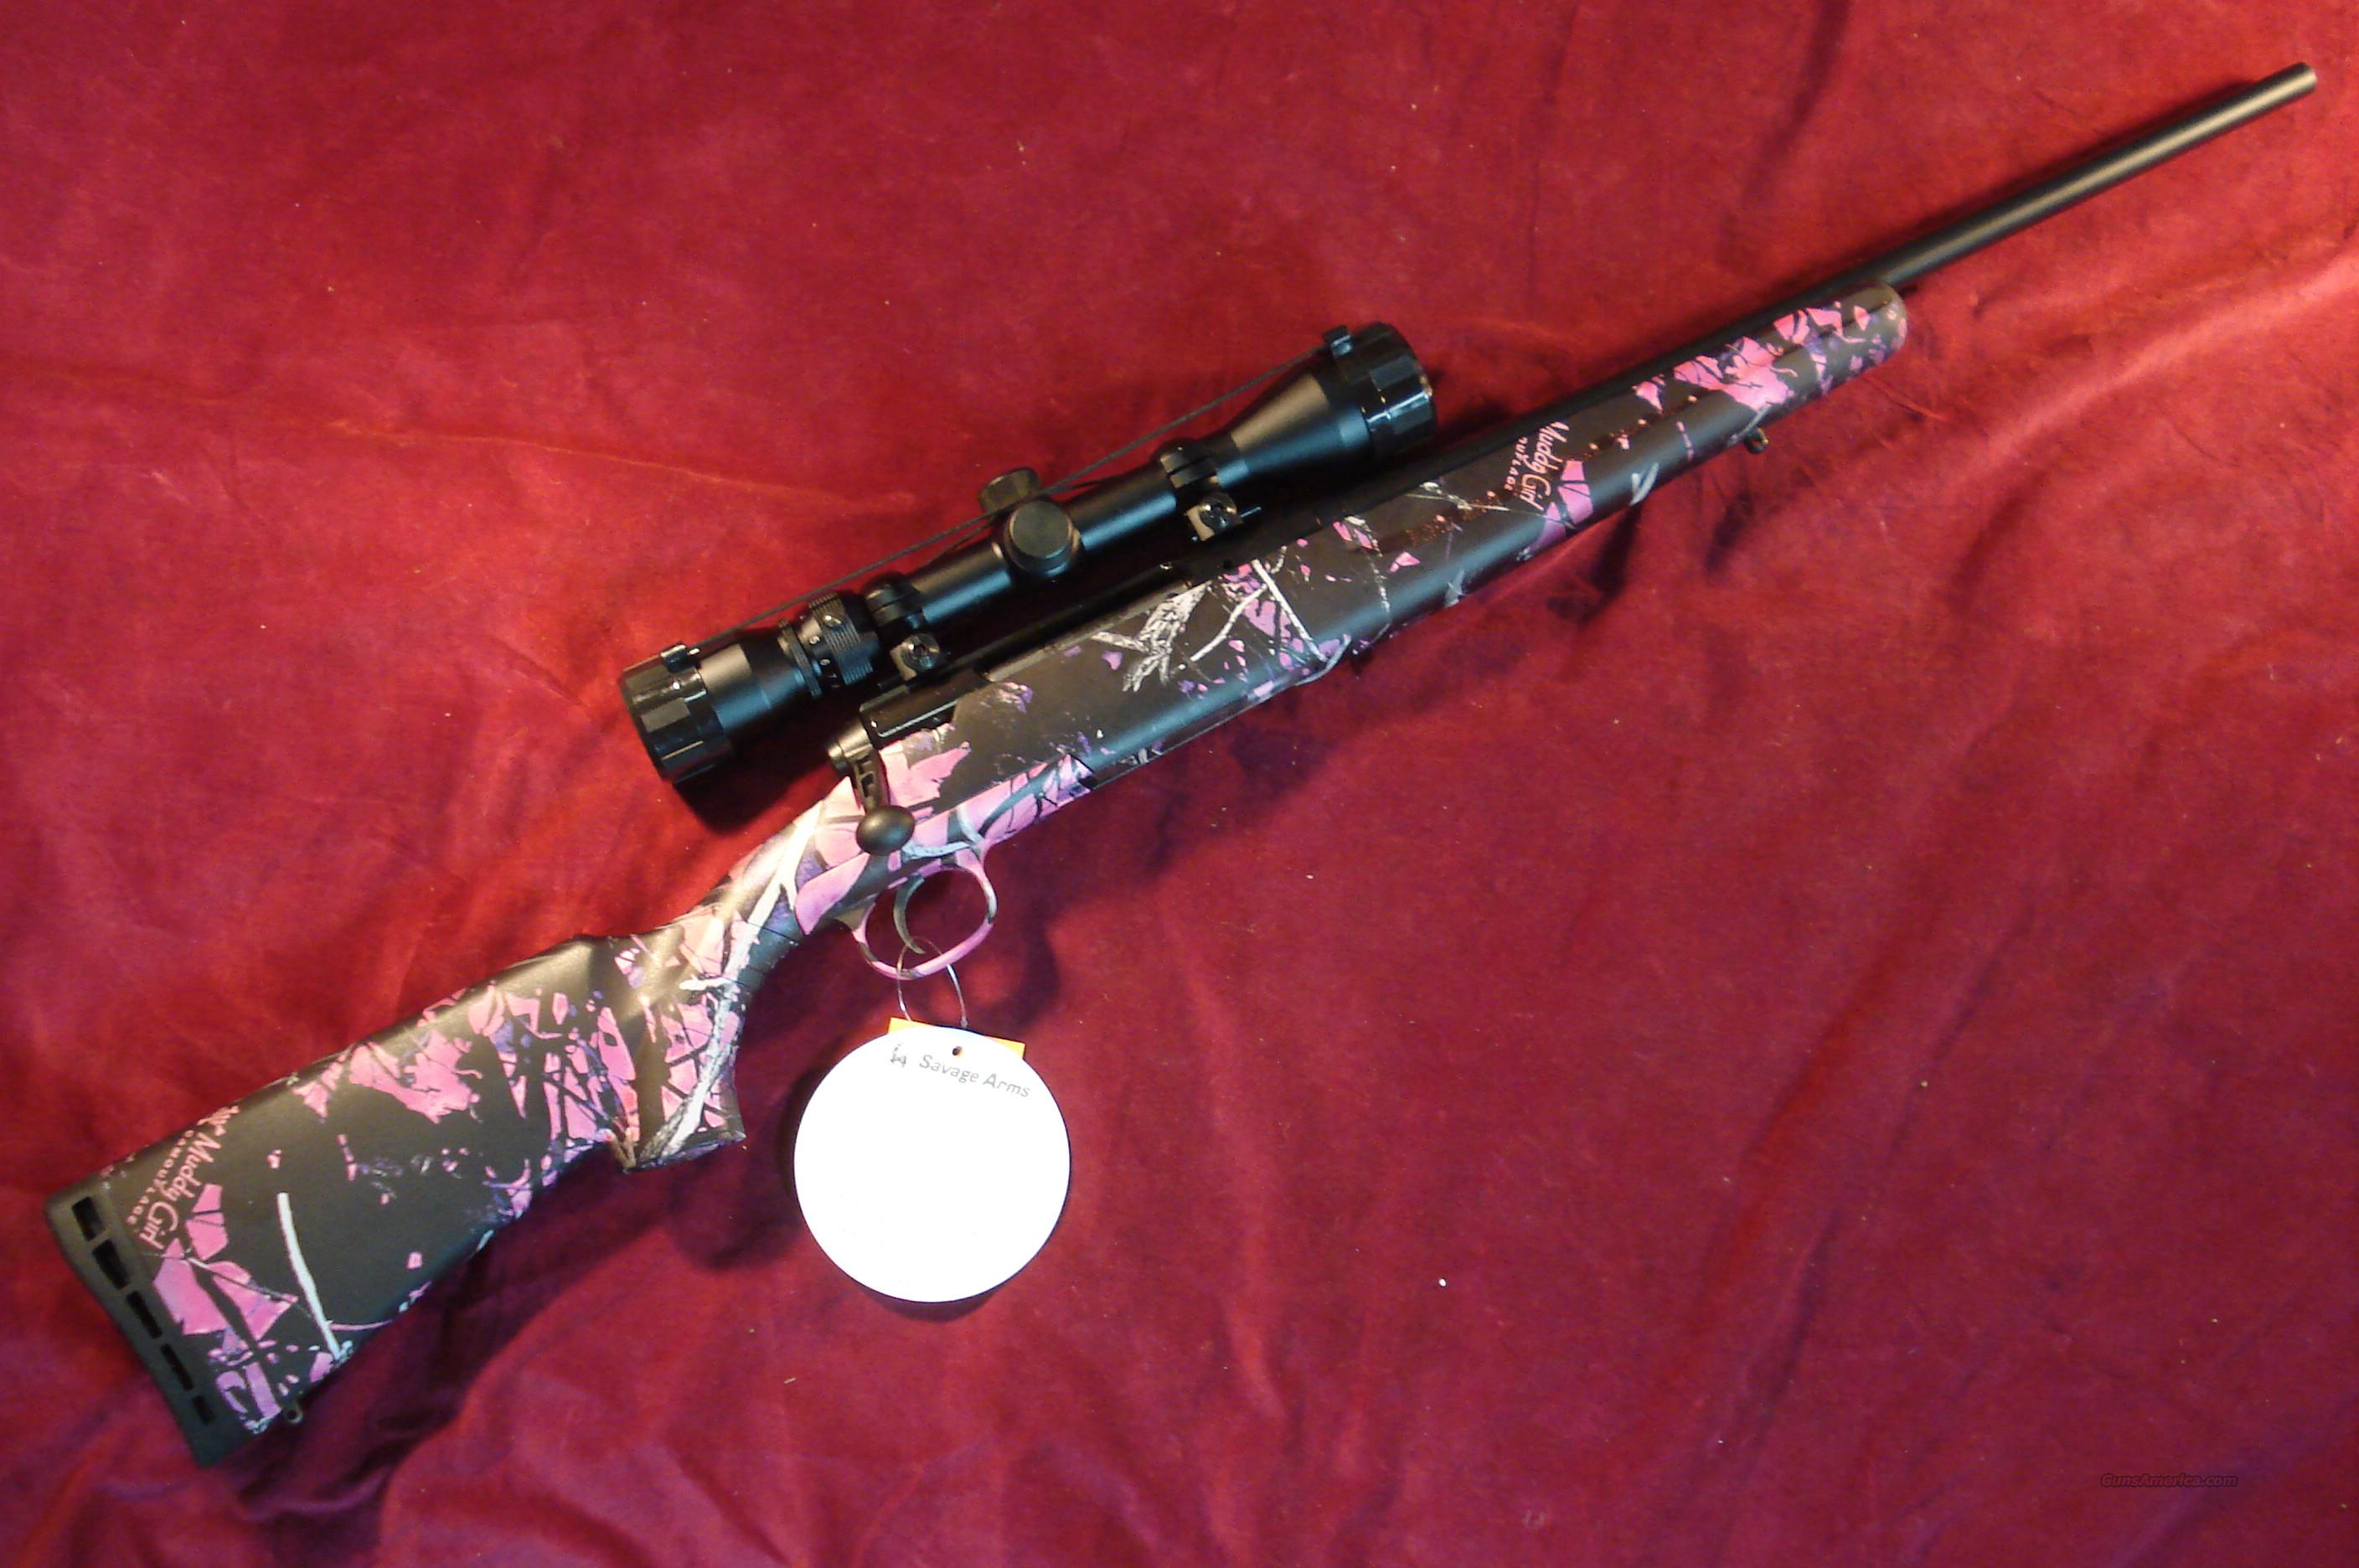 SAVAGE AXIS XP YOUTH 223 CAL MUDDY GIRL CAMO NEW (19975)   Guns > Rifles > Savage Rifles > Standard Bolt Action > Sporting